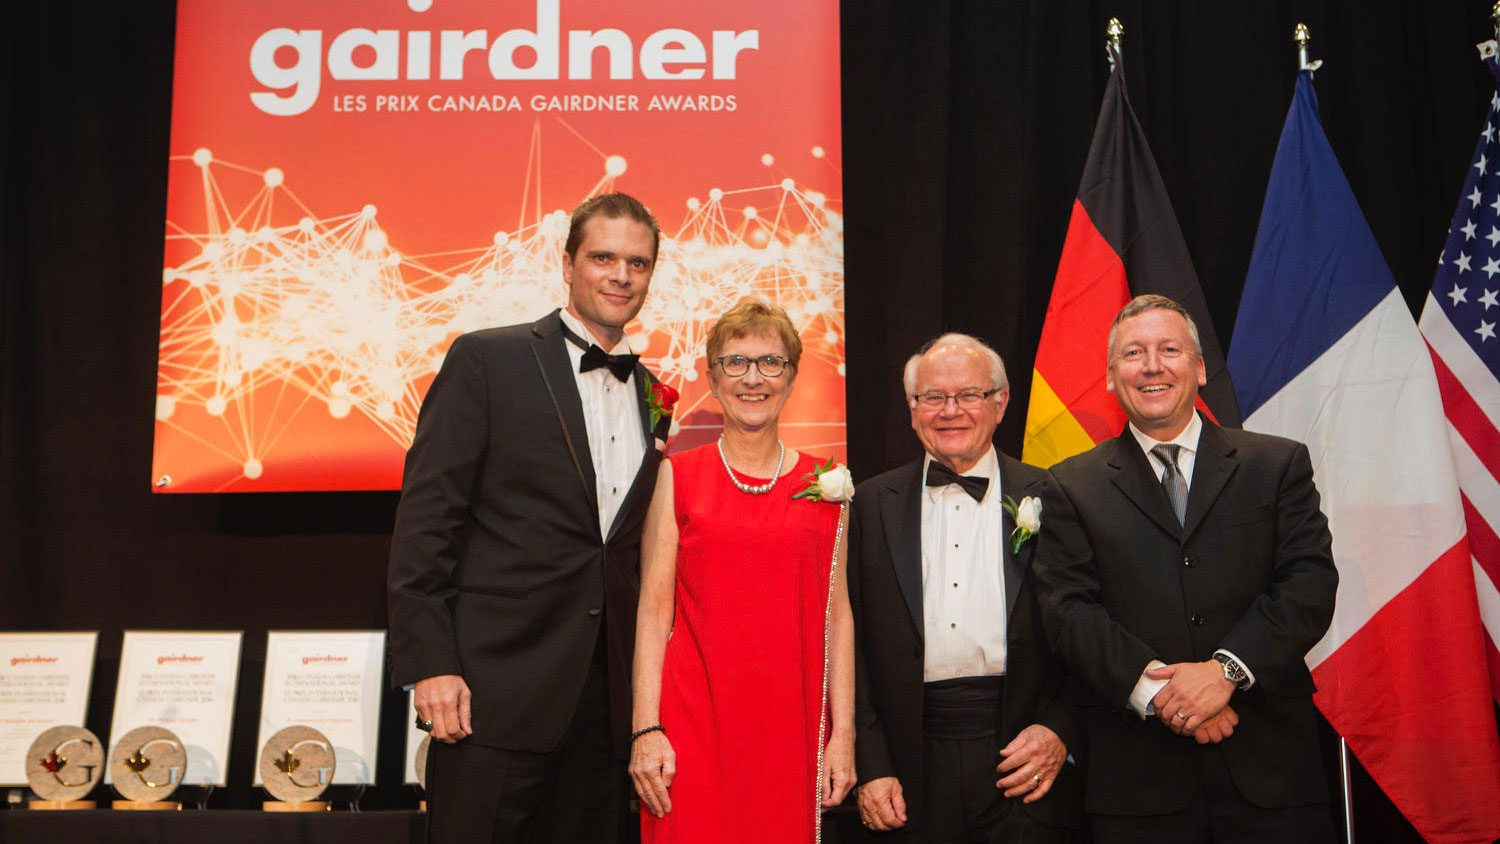 Dr. Rodolphe Barrangou with Dr. Janet Rossantand, Gairdner president and scientific director; Dr. Lorne Tyrrell, chair of the Gairdner board of directors; and CALS Dean Richard Linton at the award ceremony in Toronto.